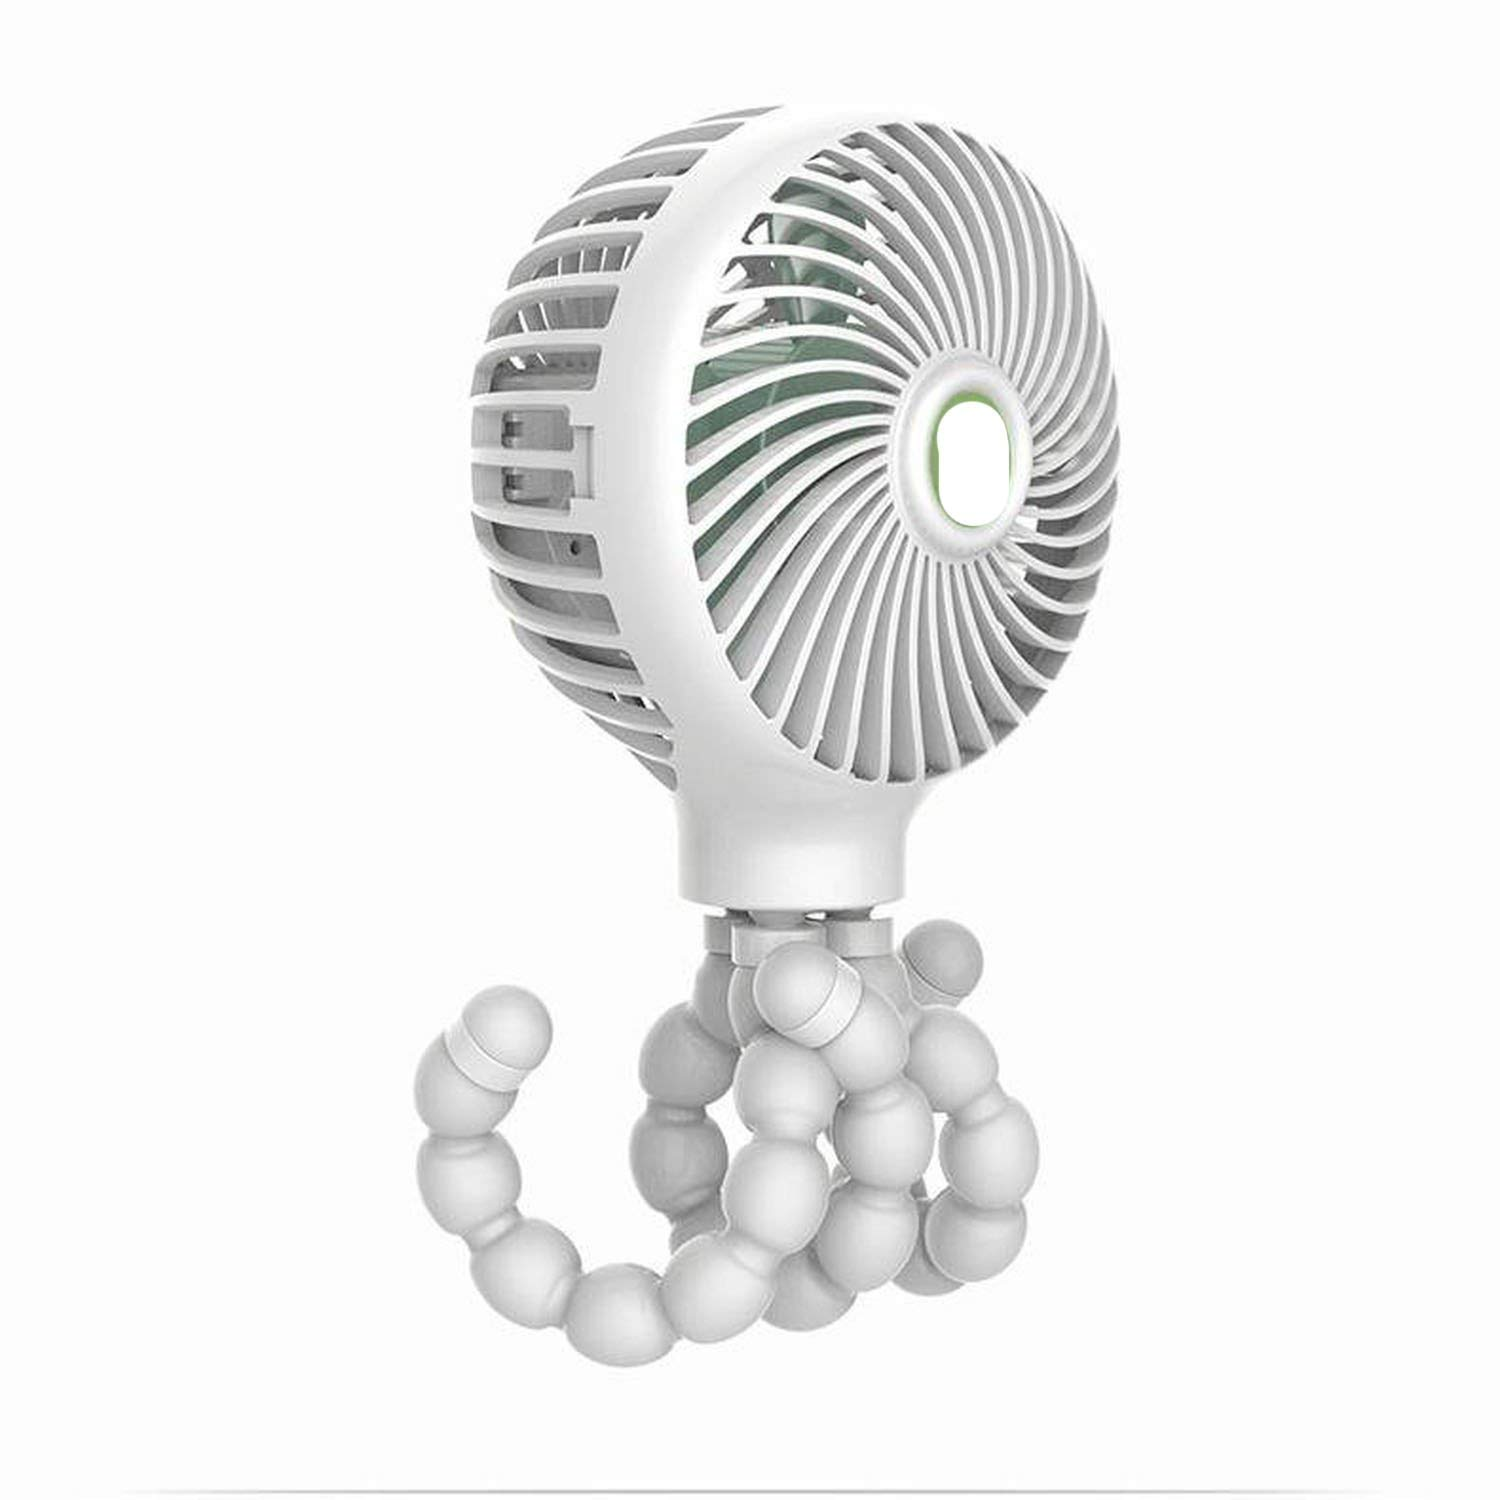 Mini Pram Fan Personal Portable Desk Handheld Baby Bed Fan with USB Rechargeable Battery Operated Cooling Table Fan,White